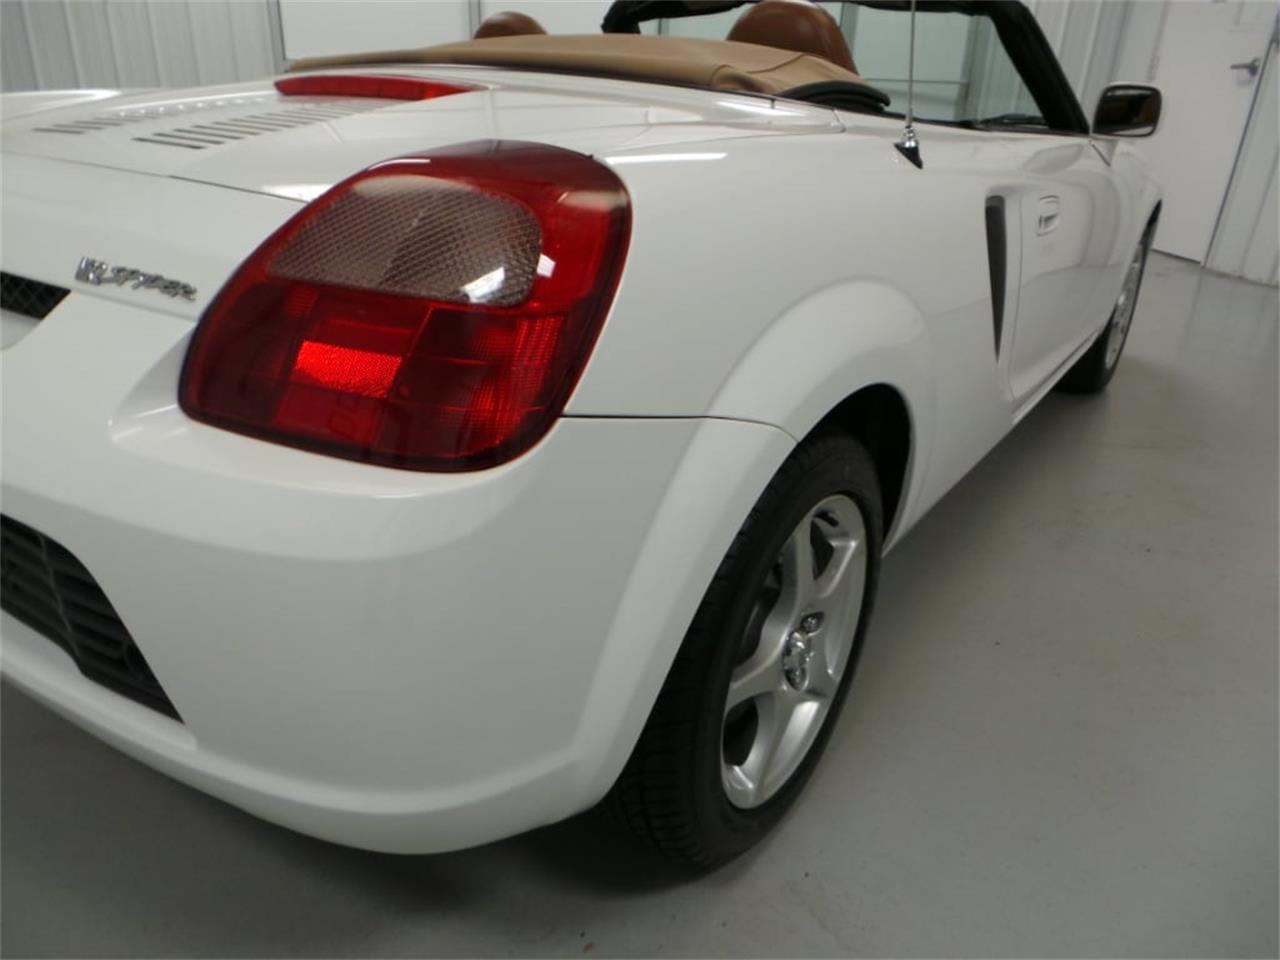 Large Picture of 2001 Toyota MR2 Spyder Offered by Duncan Imports & Classic Cars - JL89